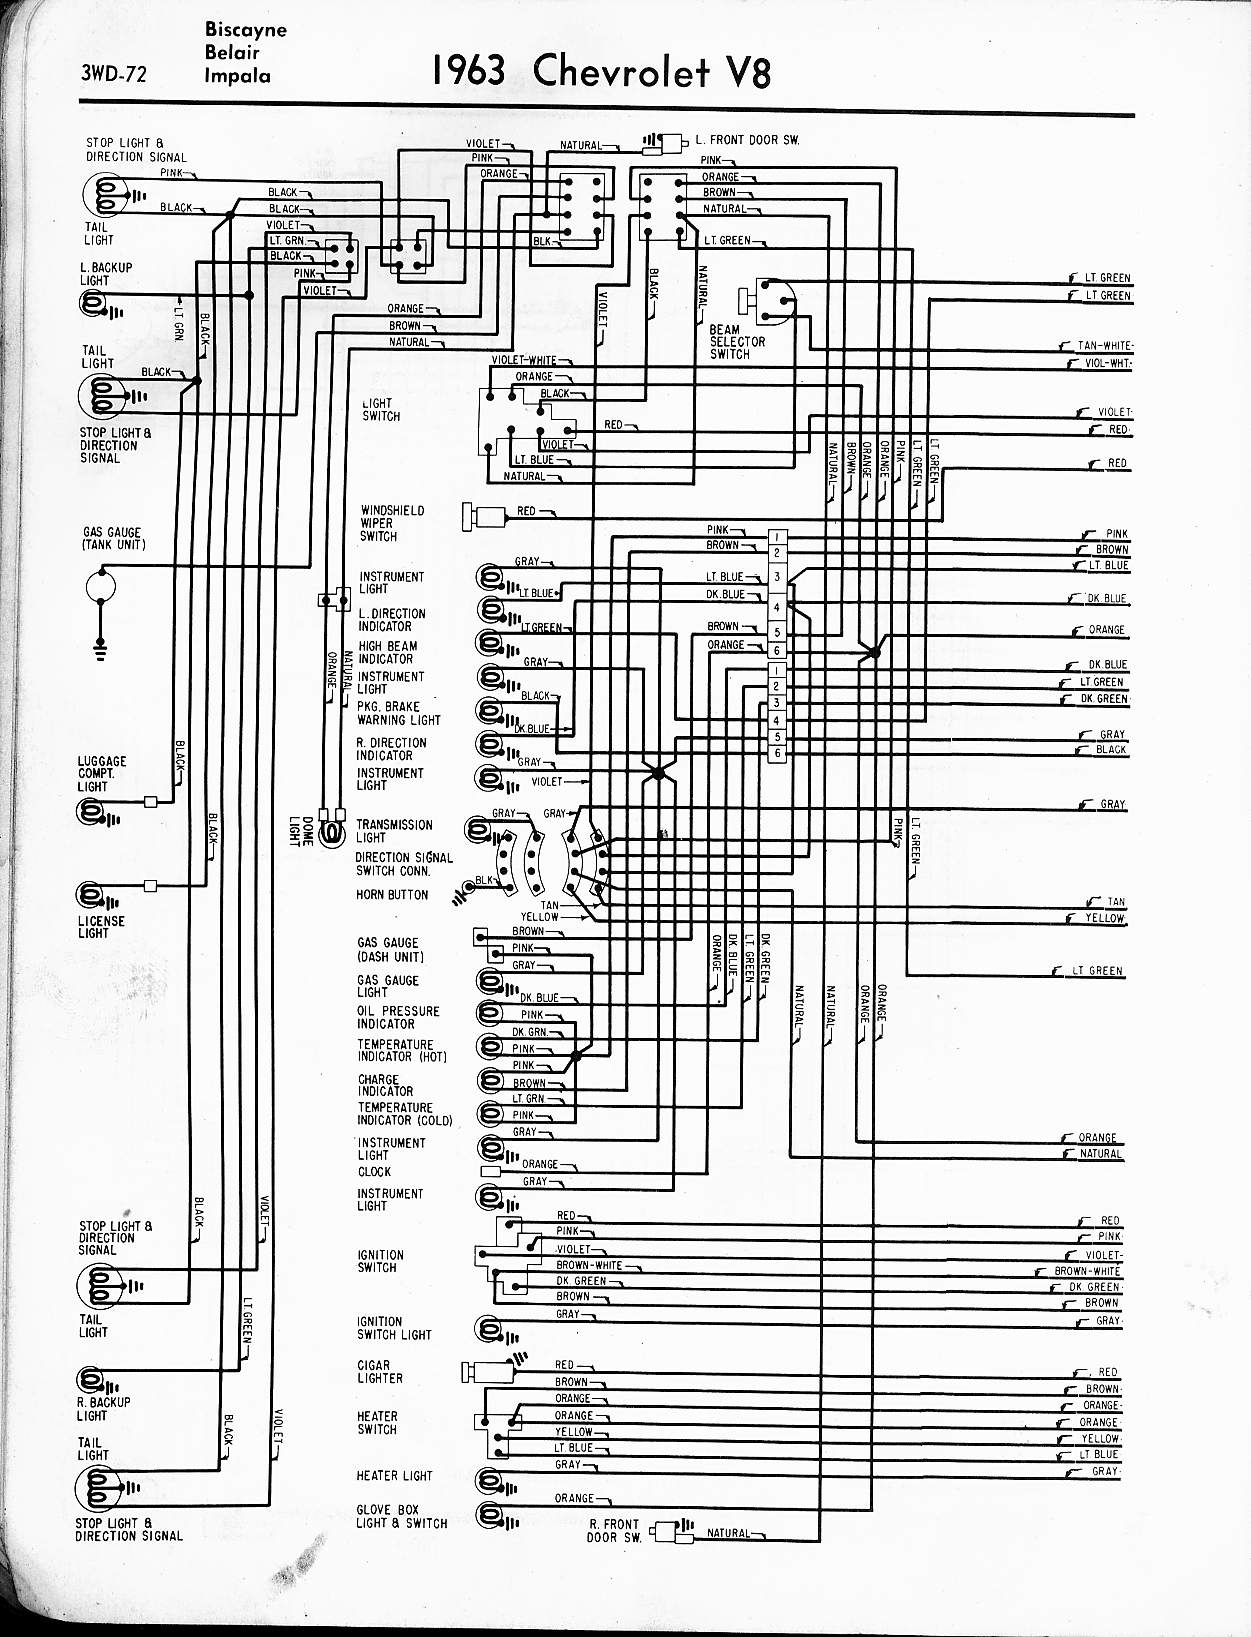 1968 chevy impala turn signal wiring diagram auto. Black Bedroom Furniture Sets. Home Design Ideas